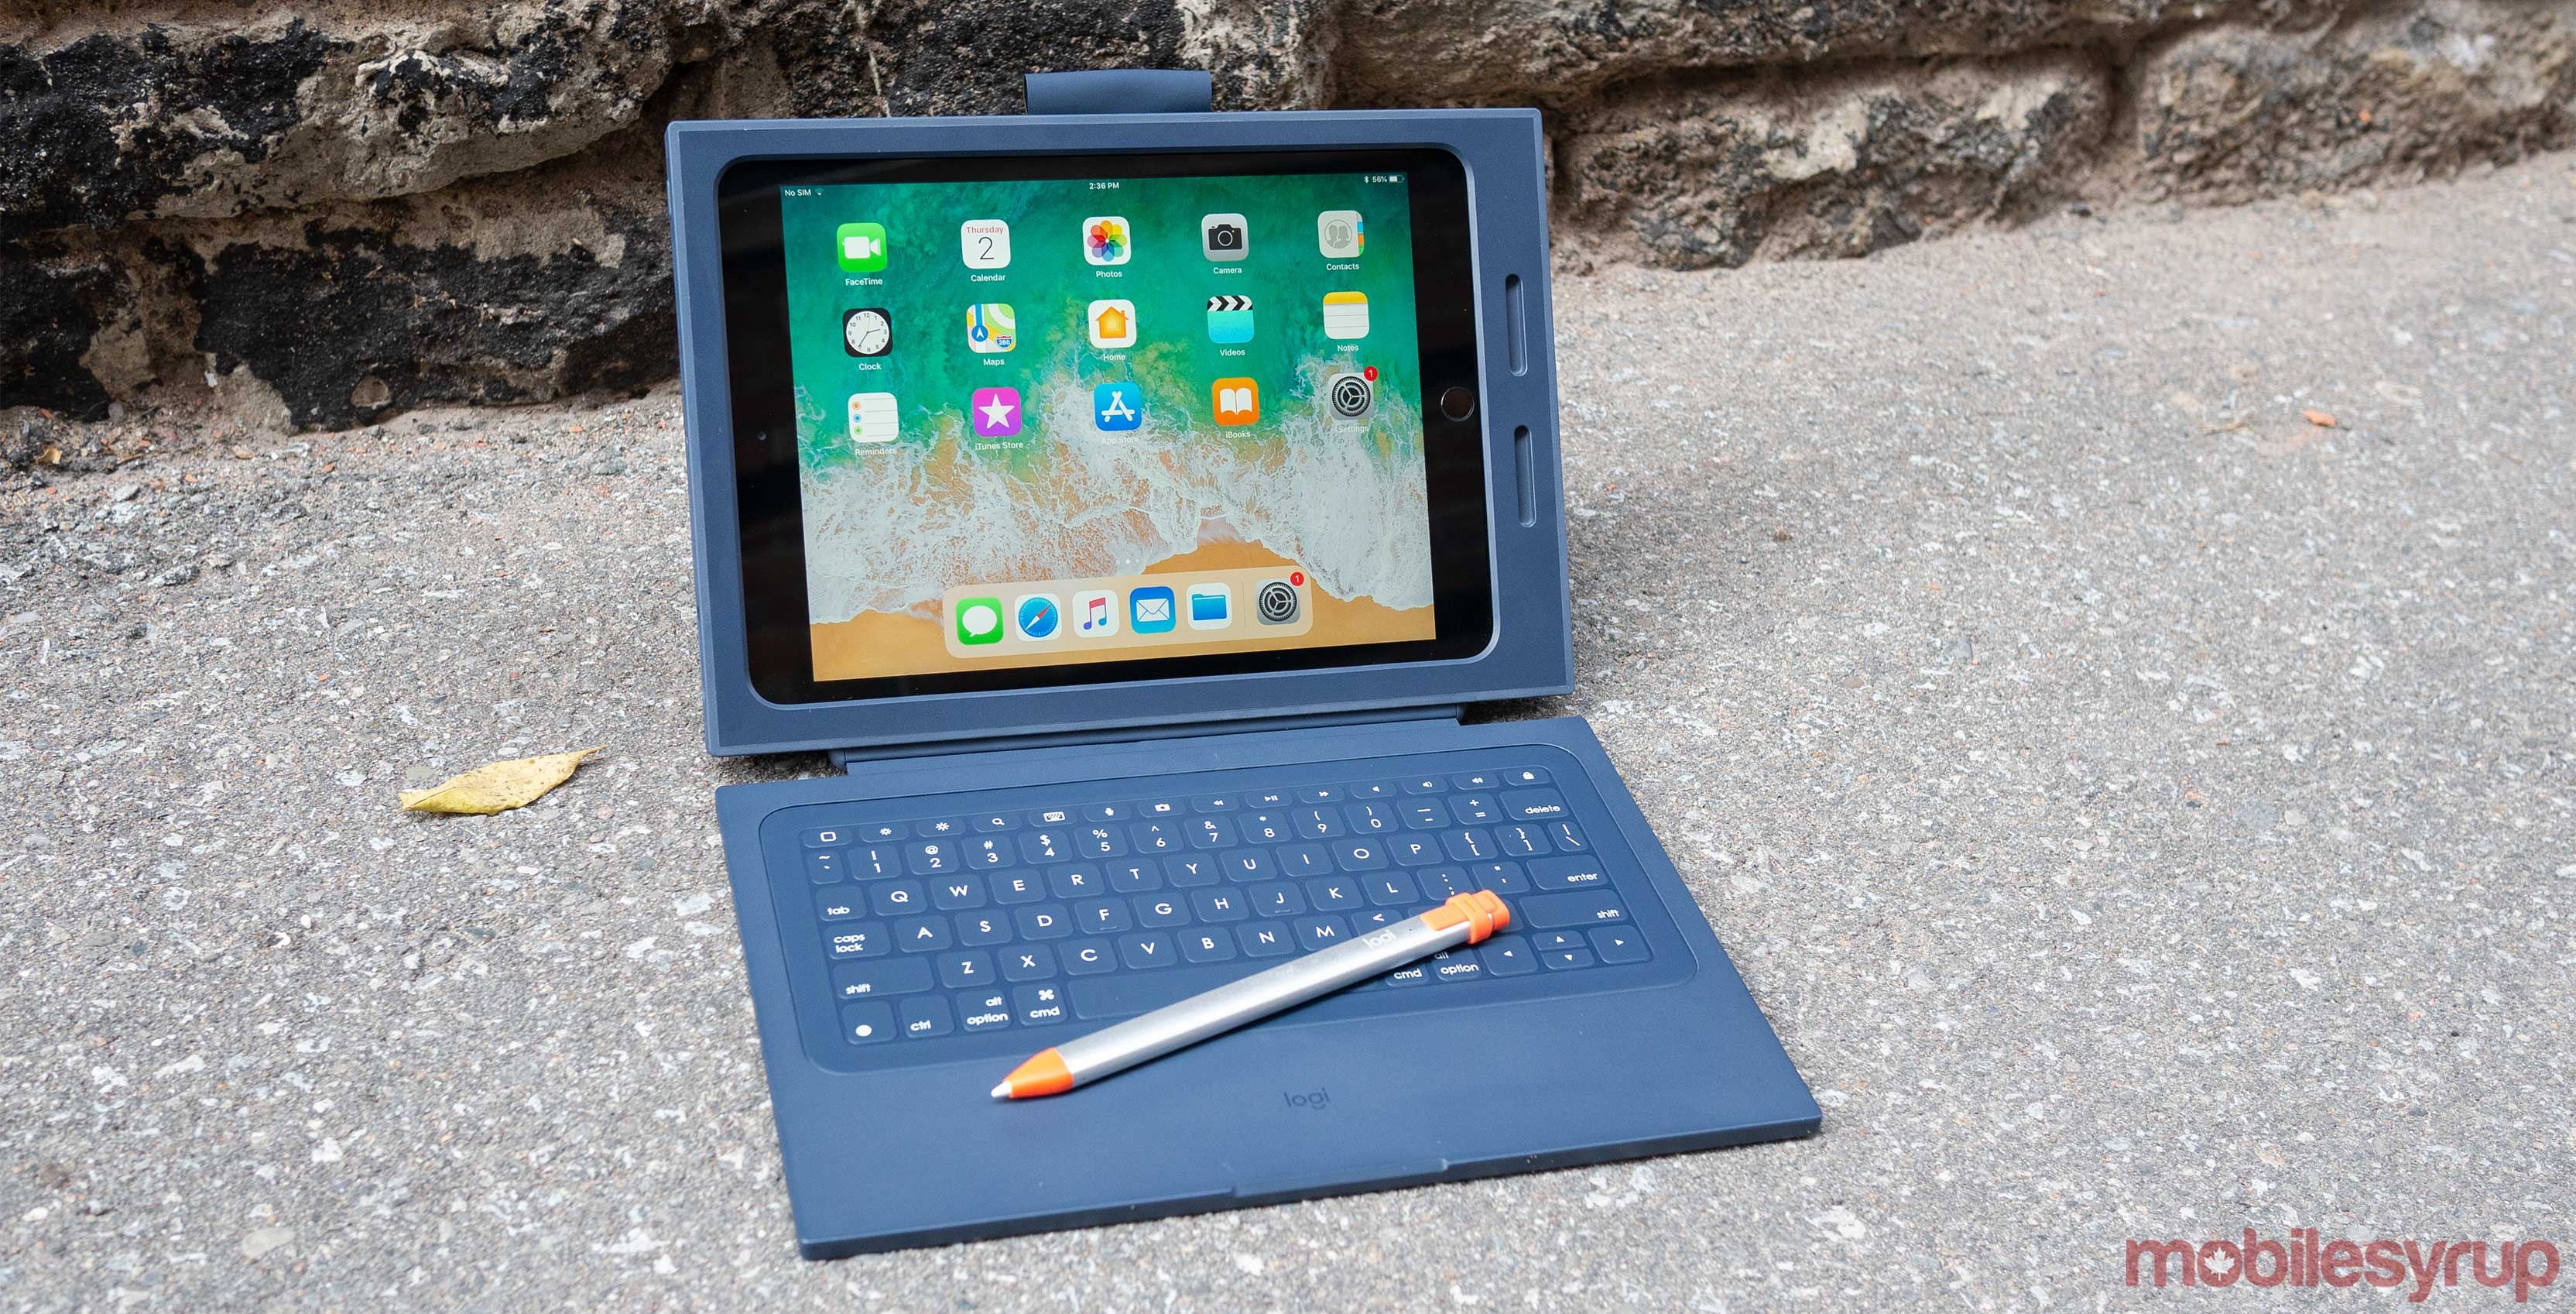 8d92a41055f Logitech's Rugged Combo 2 iPad case turns Apple's 2018 9.7-inch iPad with  Apple Pencil into an absolute monstrosity.